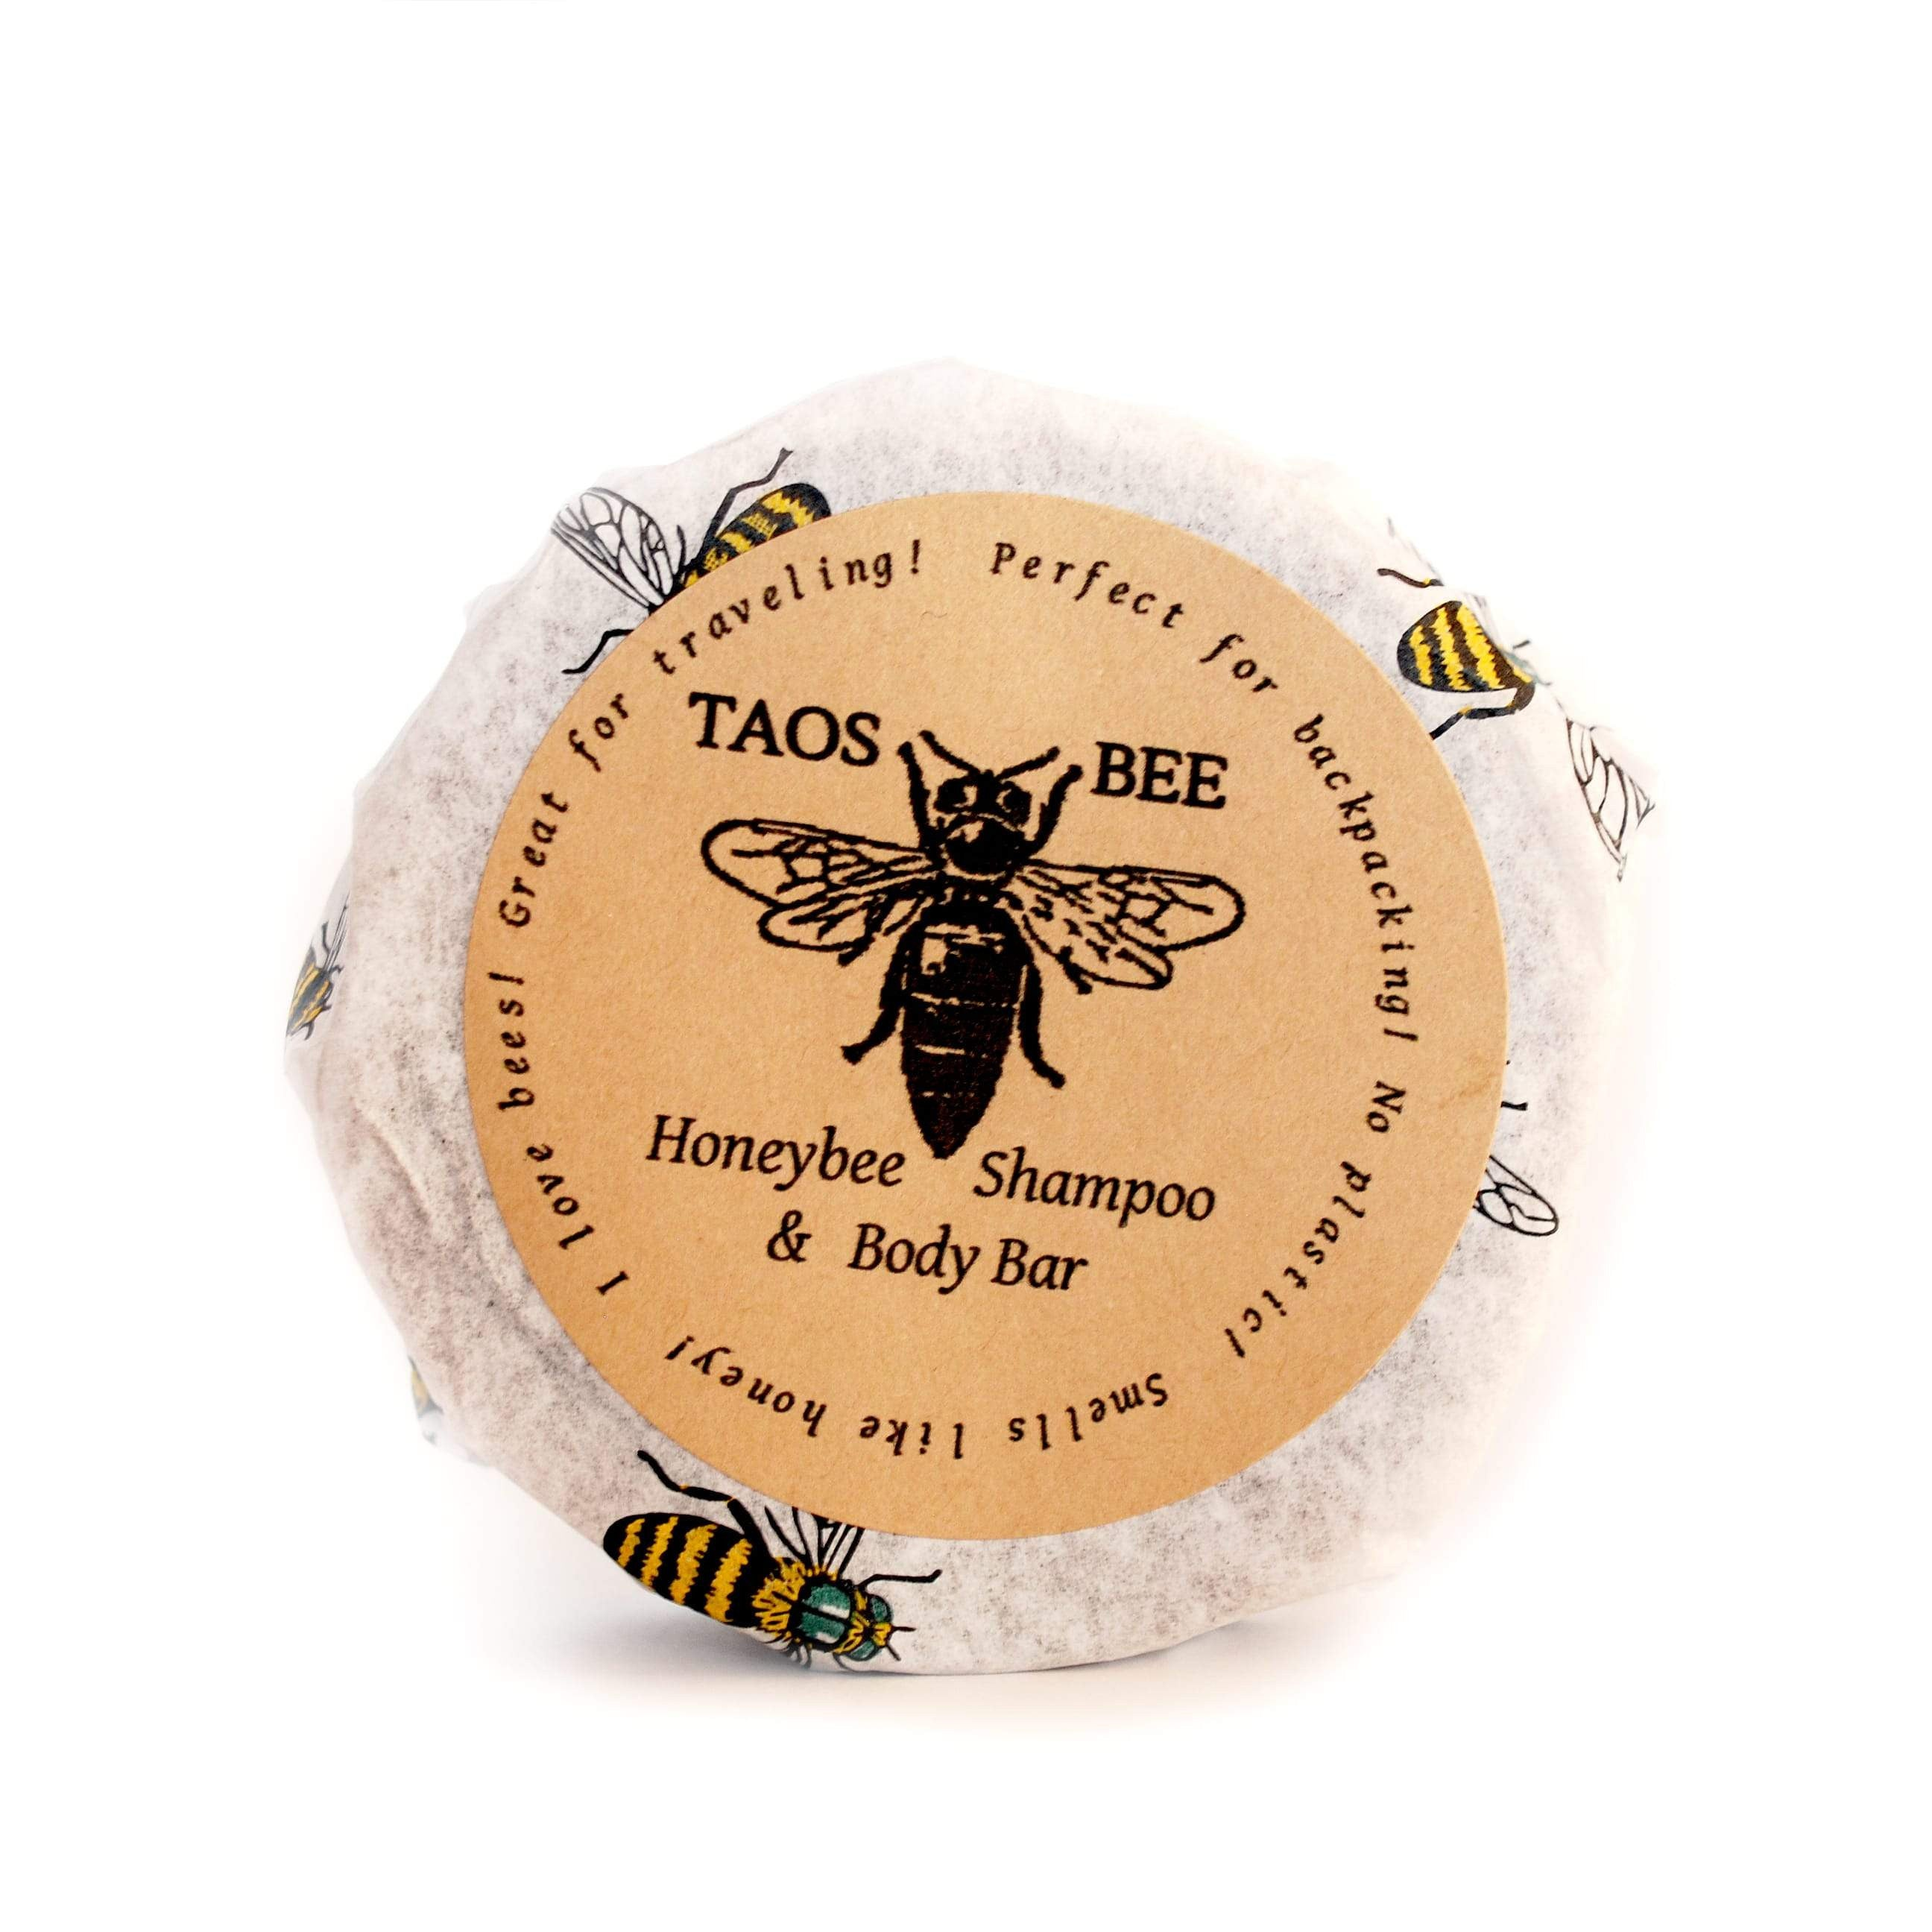 Honeybee Shampoo and Body Bar without a tin